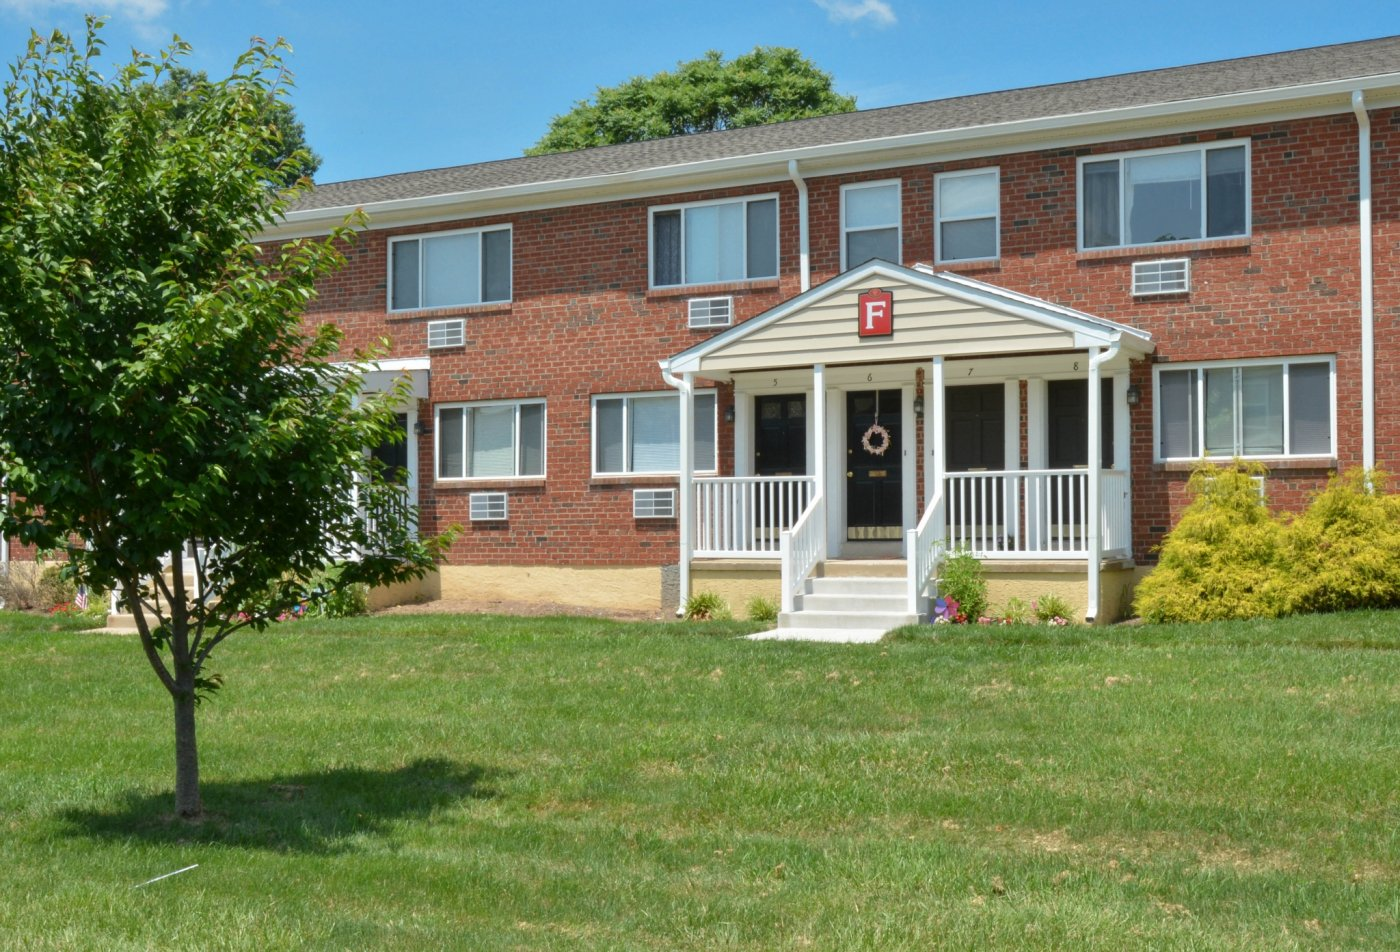 Apartments for rent in Aston, PA | Concord Court Apartments